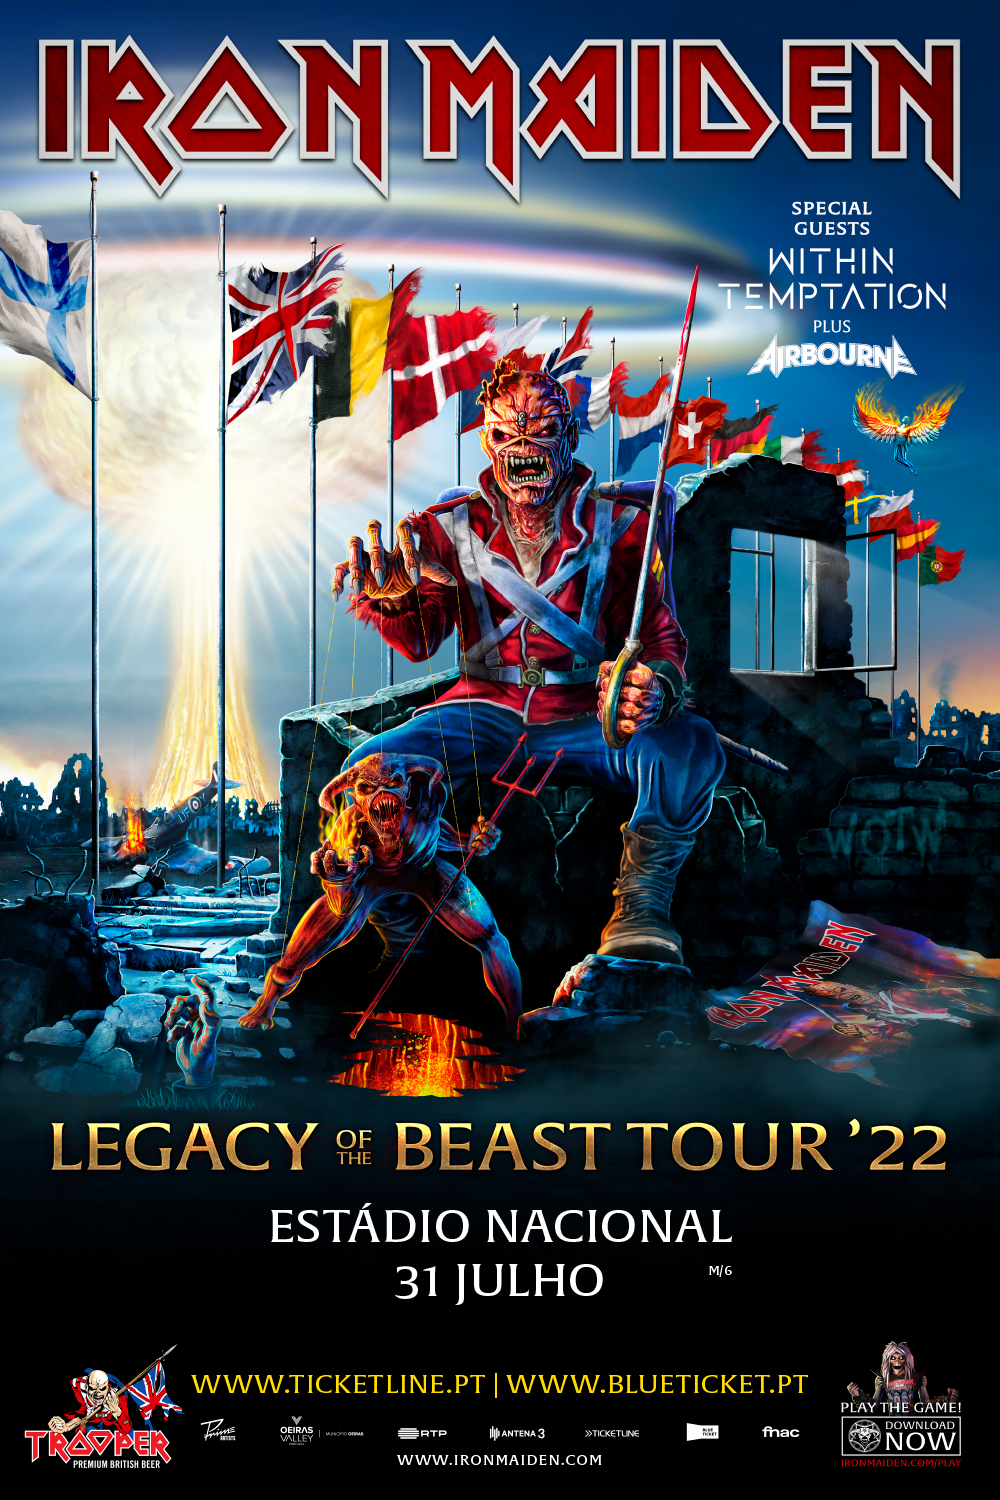 LEGACY OF THE BEAST 2022